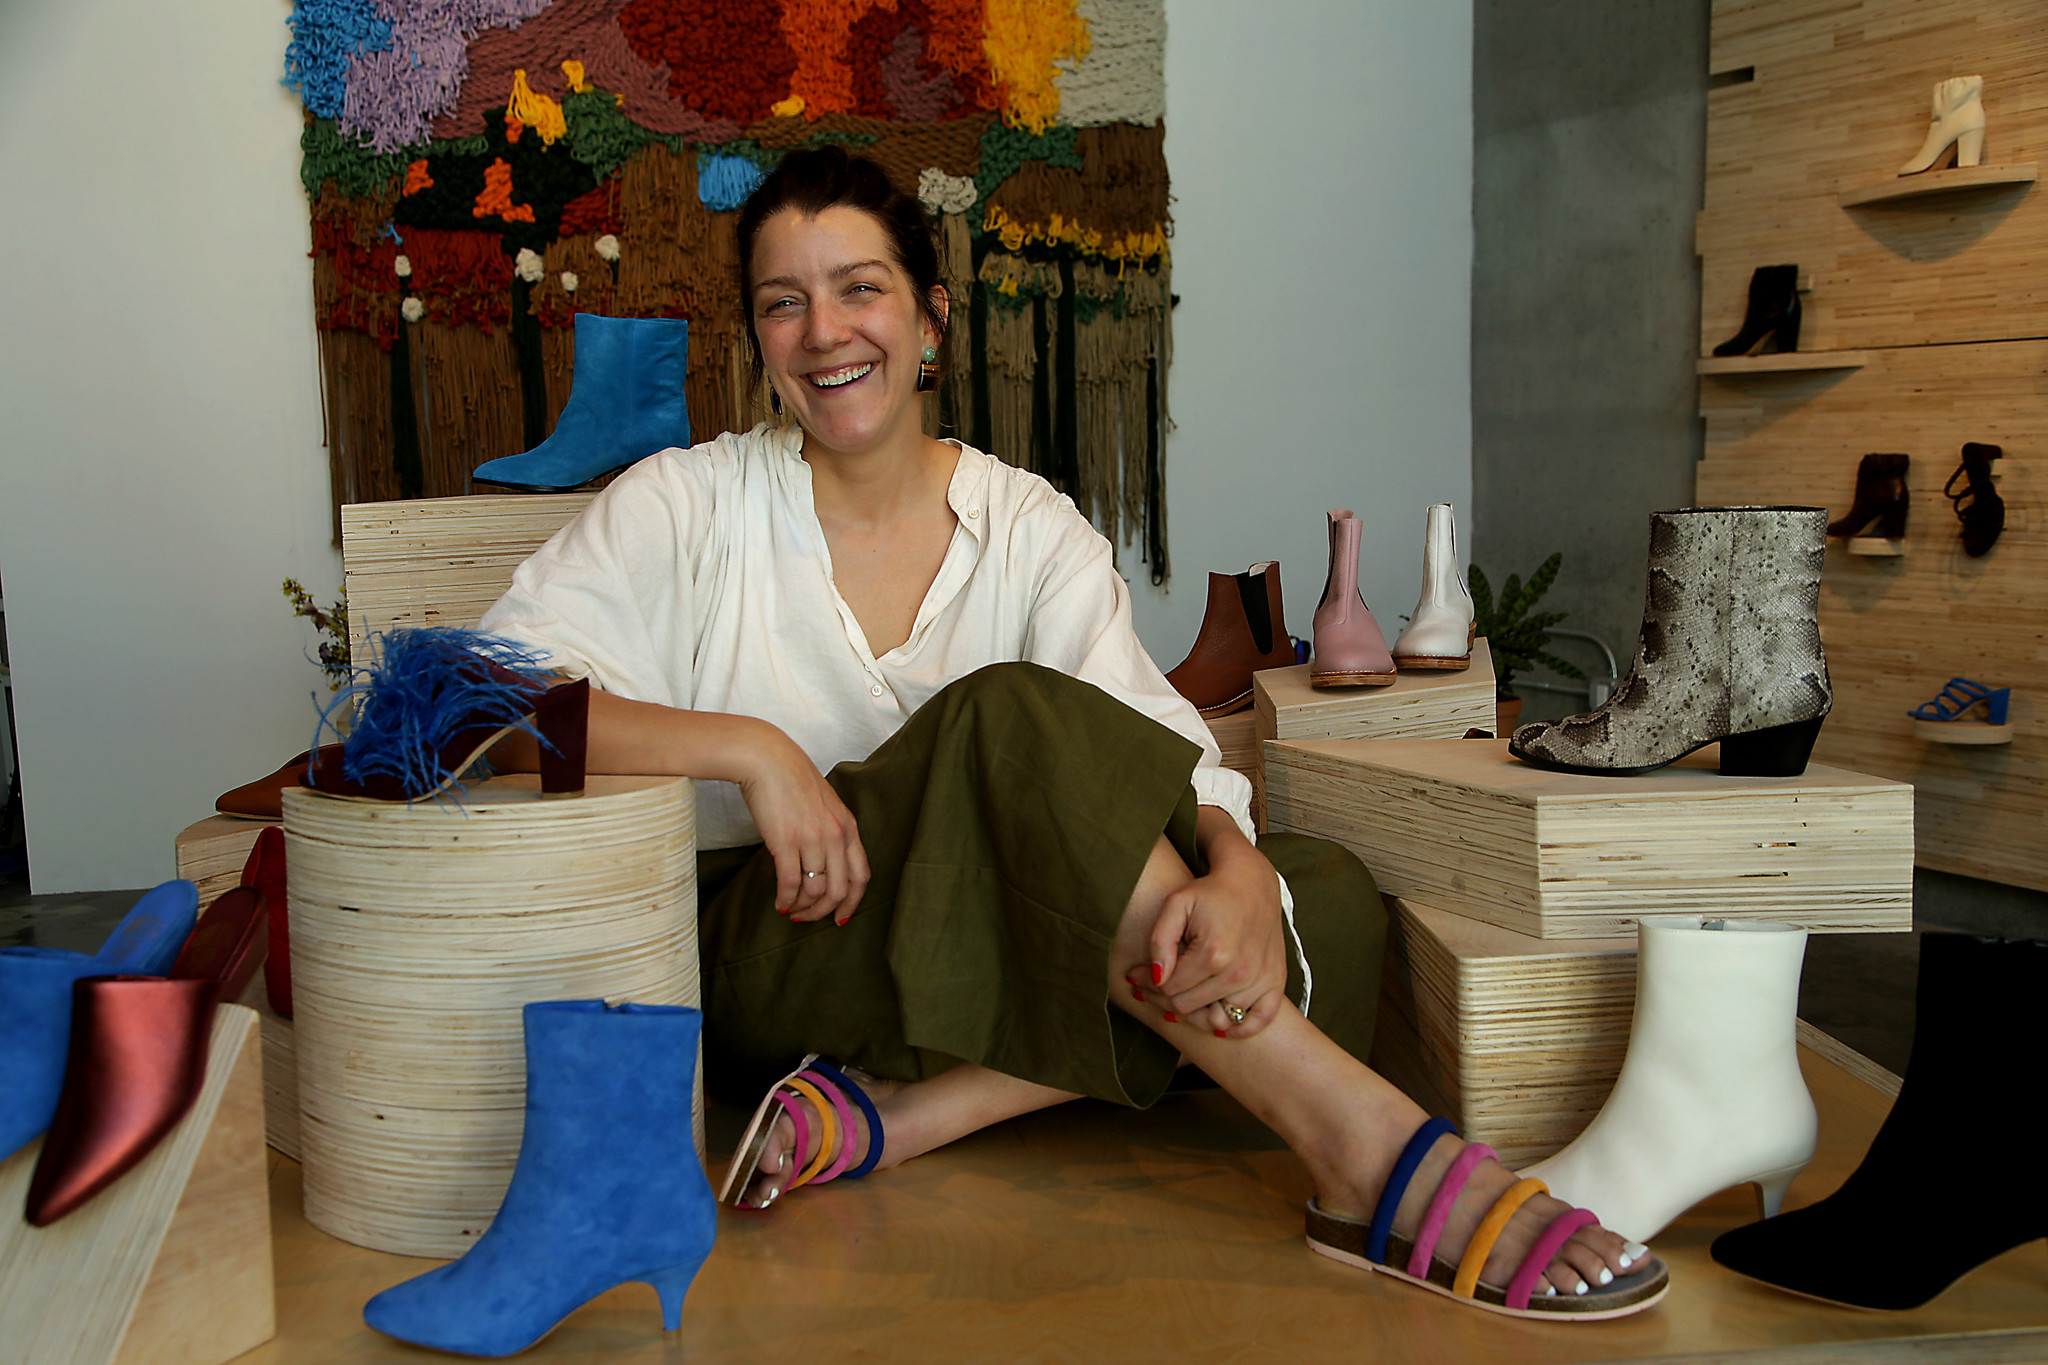 Shoe designer Charlotte Stone at her pop-up space at Platform in Culver City.